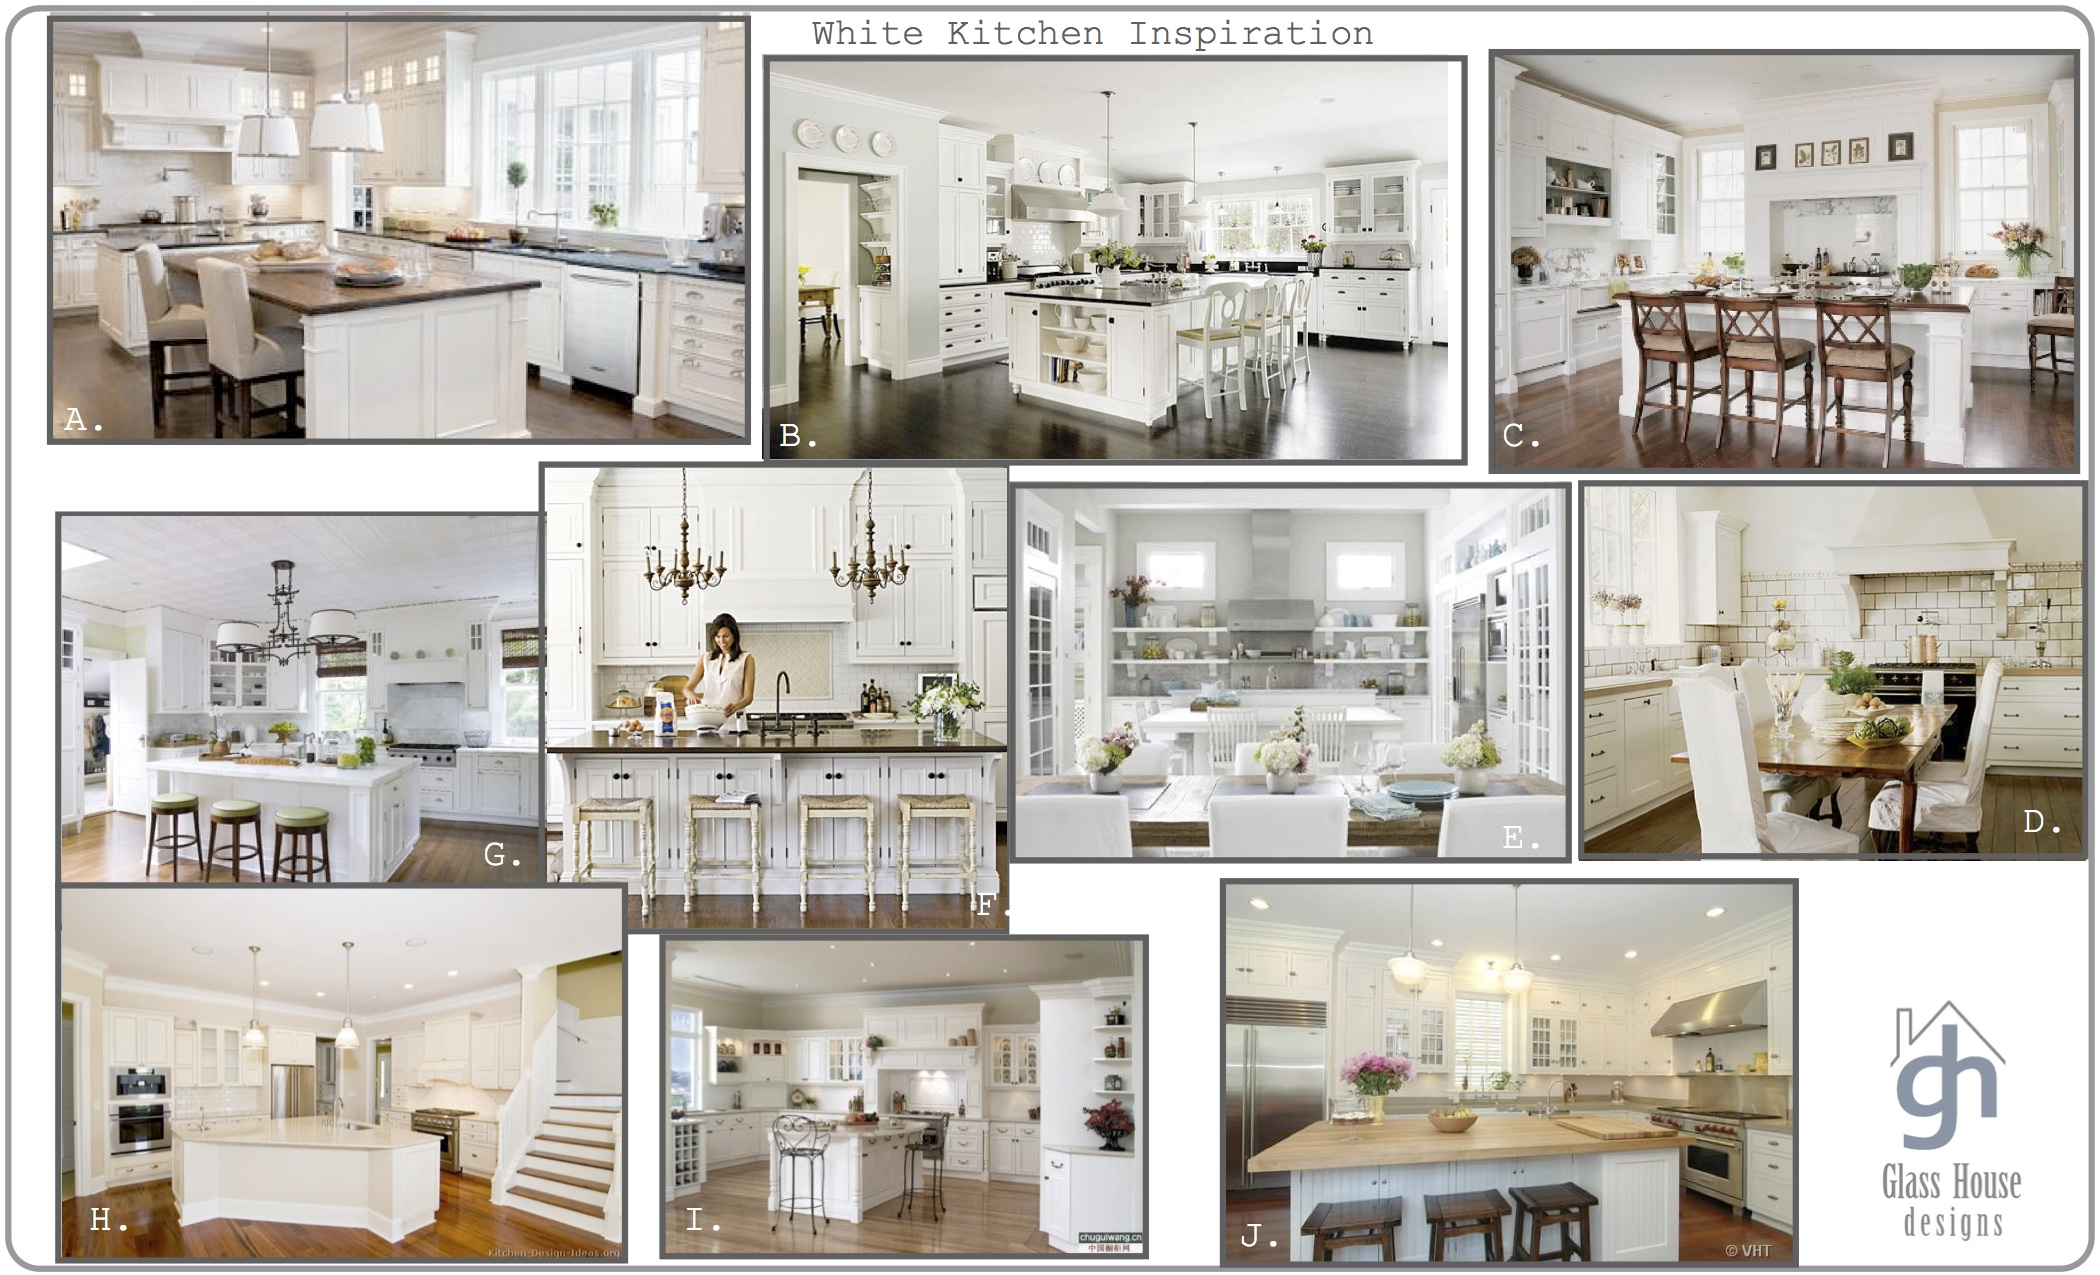 White kitchen design inspiration home ideas pinterest for Kitchen inspiration ideas